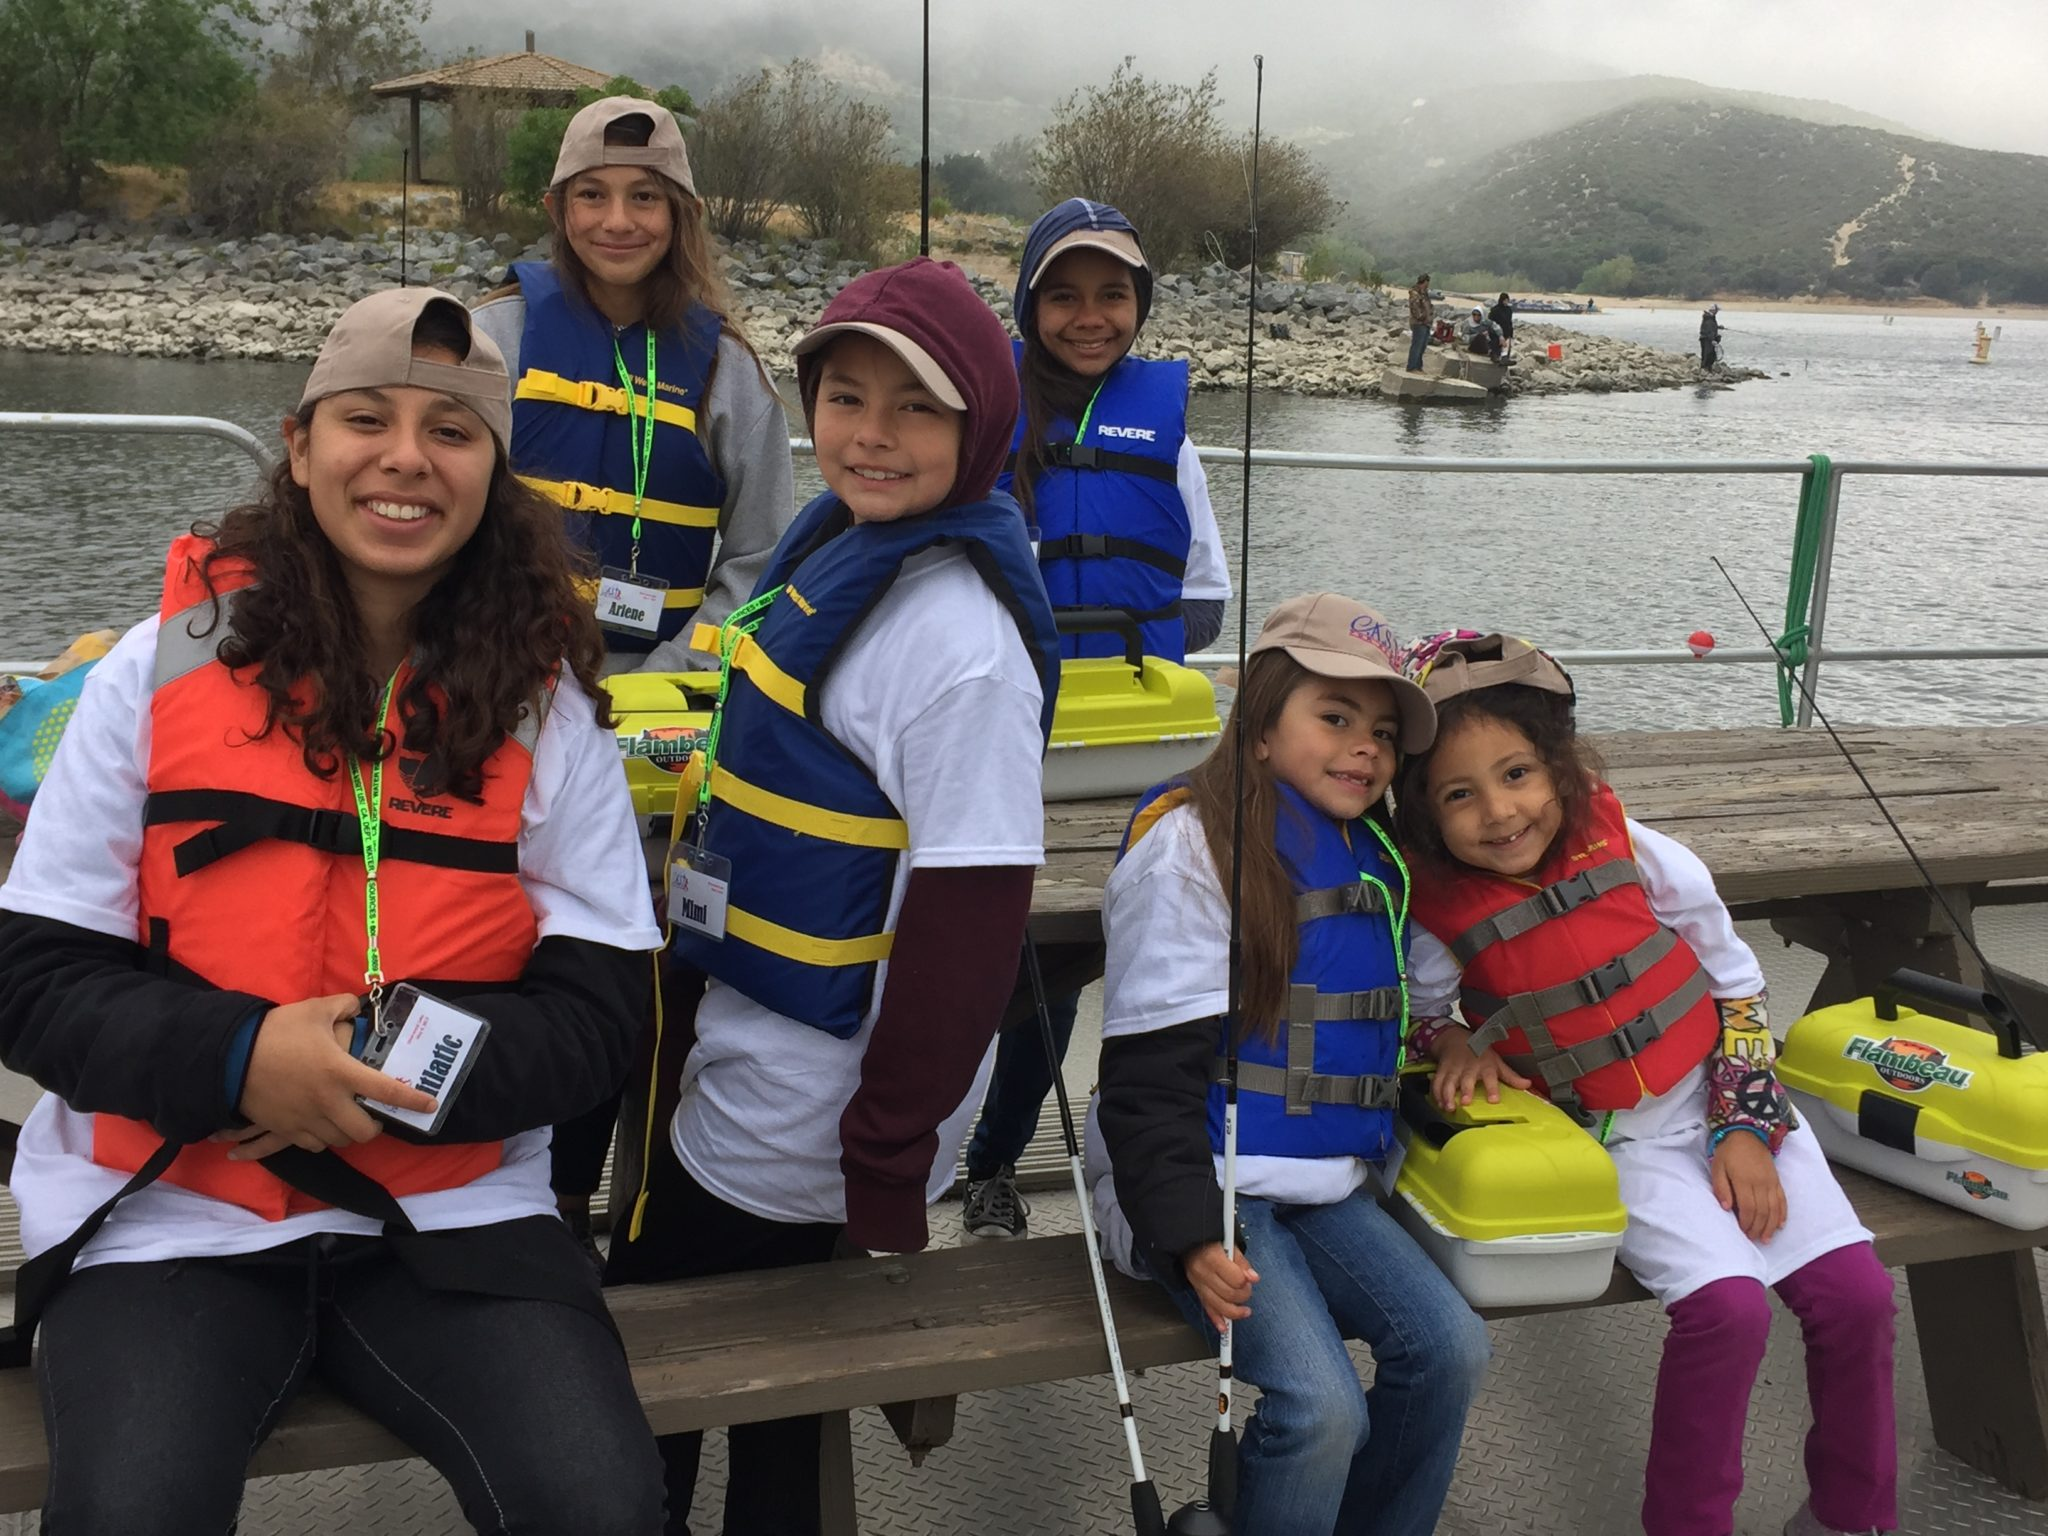 C.A.S.T. for Kids – Silverwood Lake (CA)